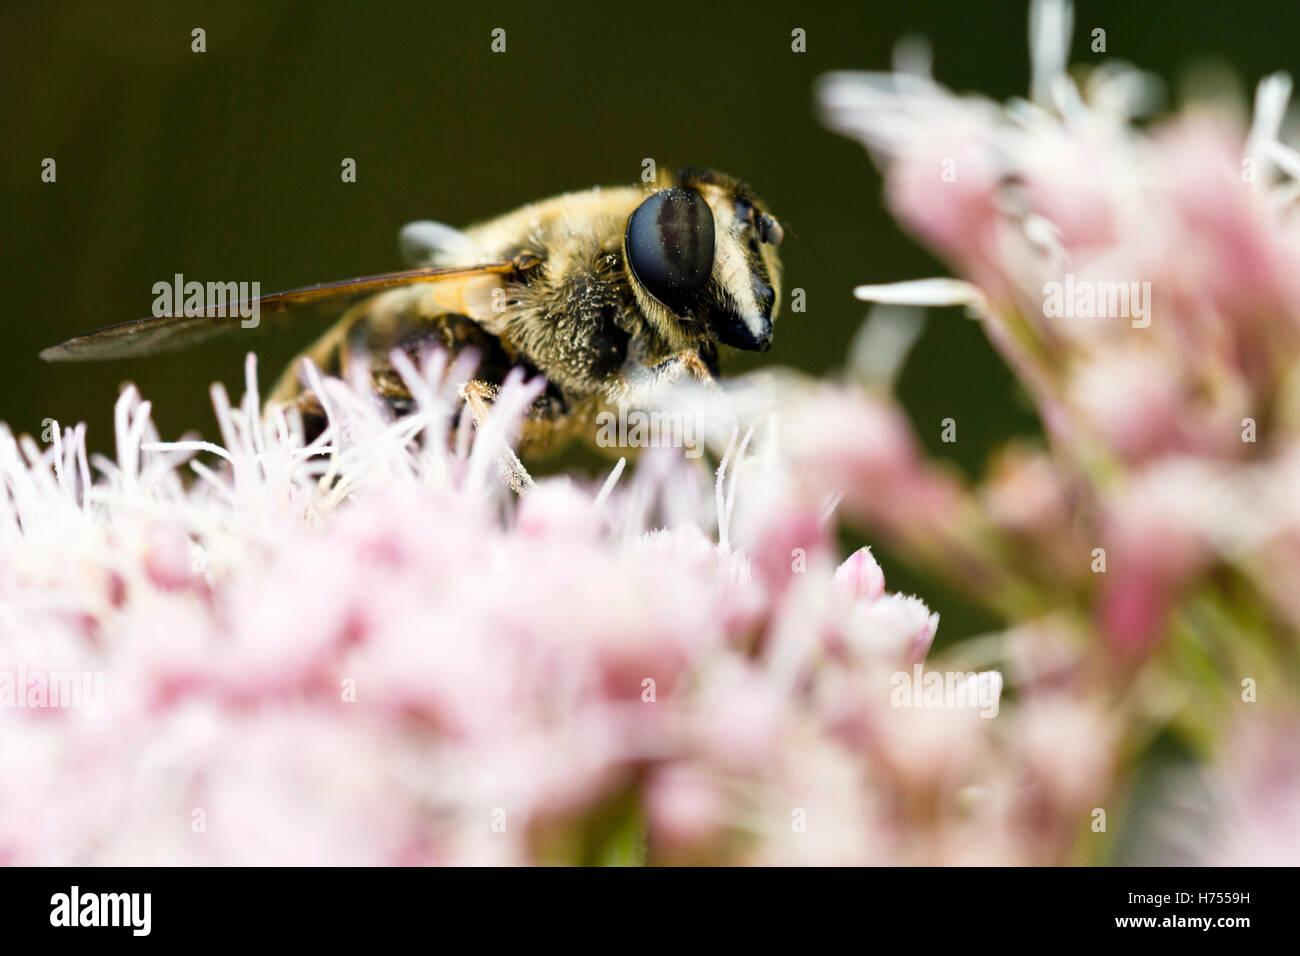 Honey bee collecting pollen on a pink flower - Stock Image